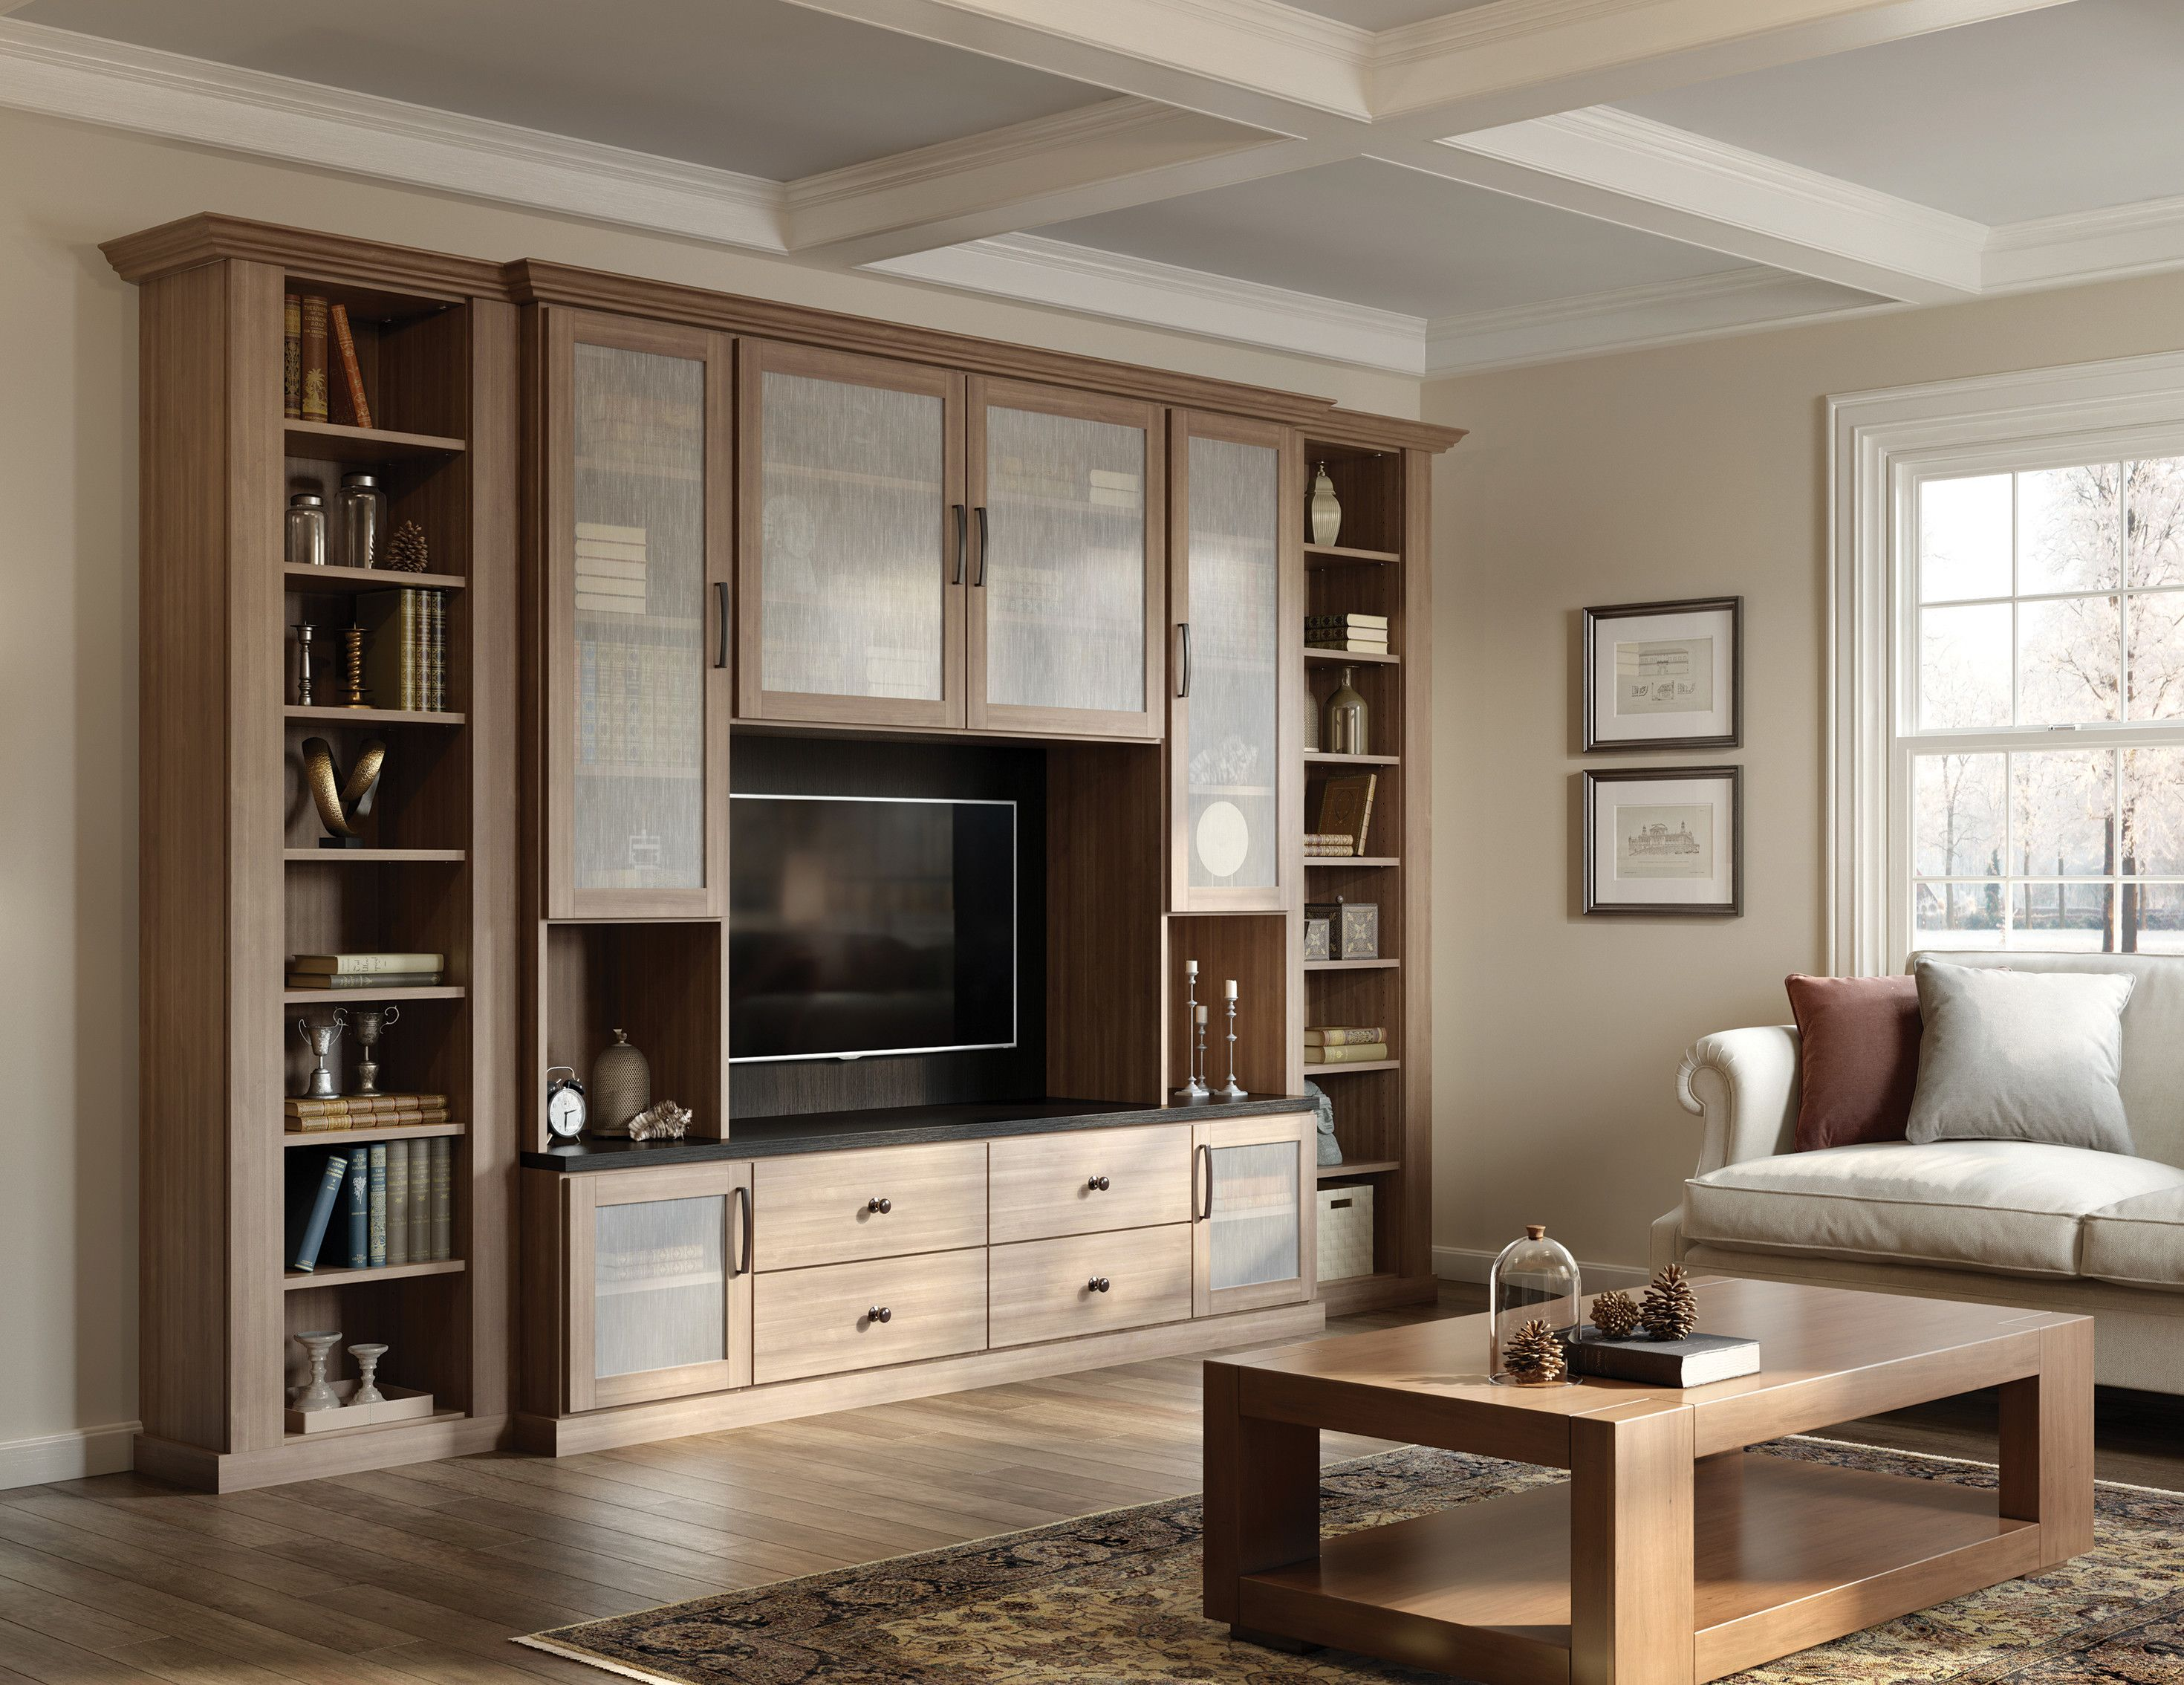 Blending storage space with inviting displays this media center